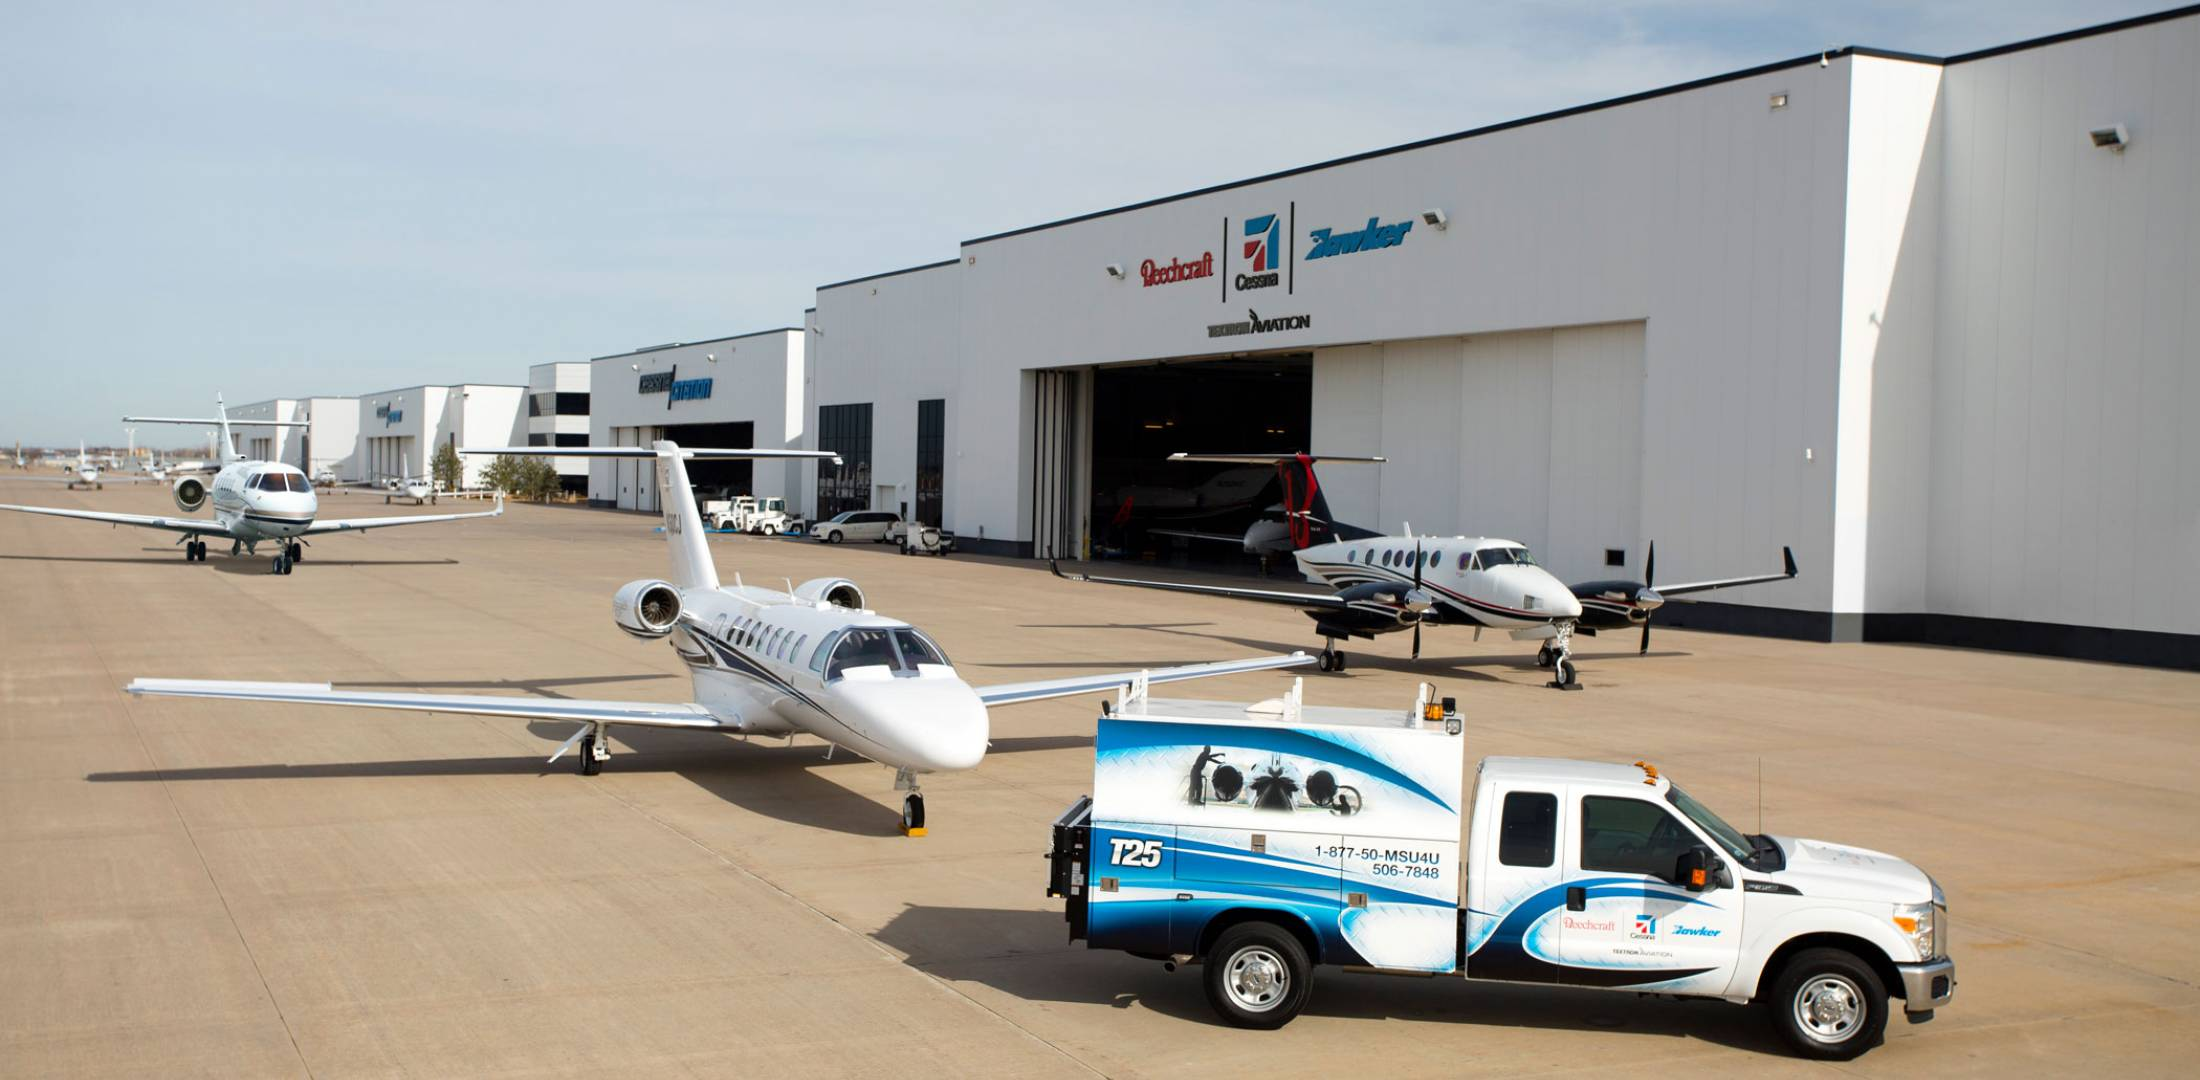 A combination of Textron Aviation's mobile service unit (MSU) trucks and aerial response team (ART) aircraft help customers' aircraft maintain their mission.